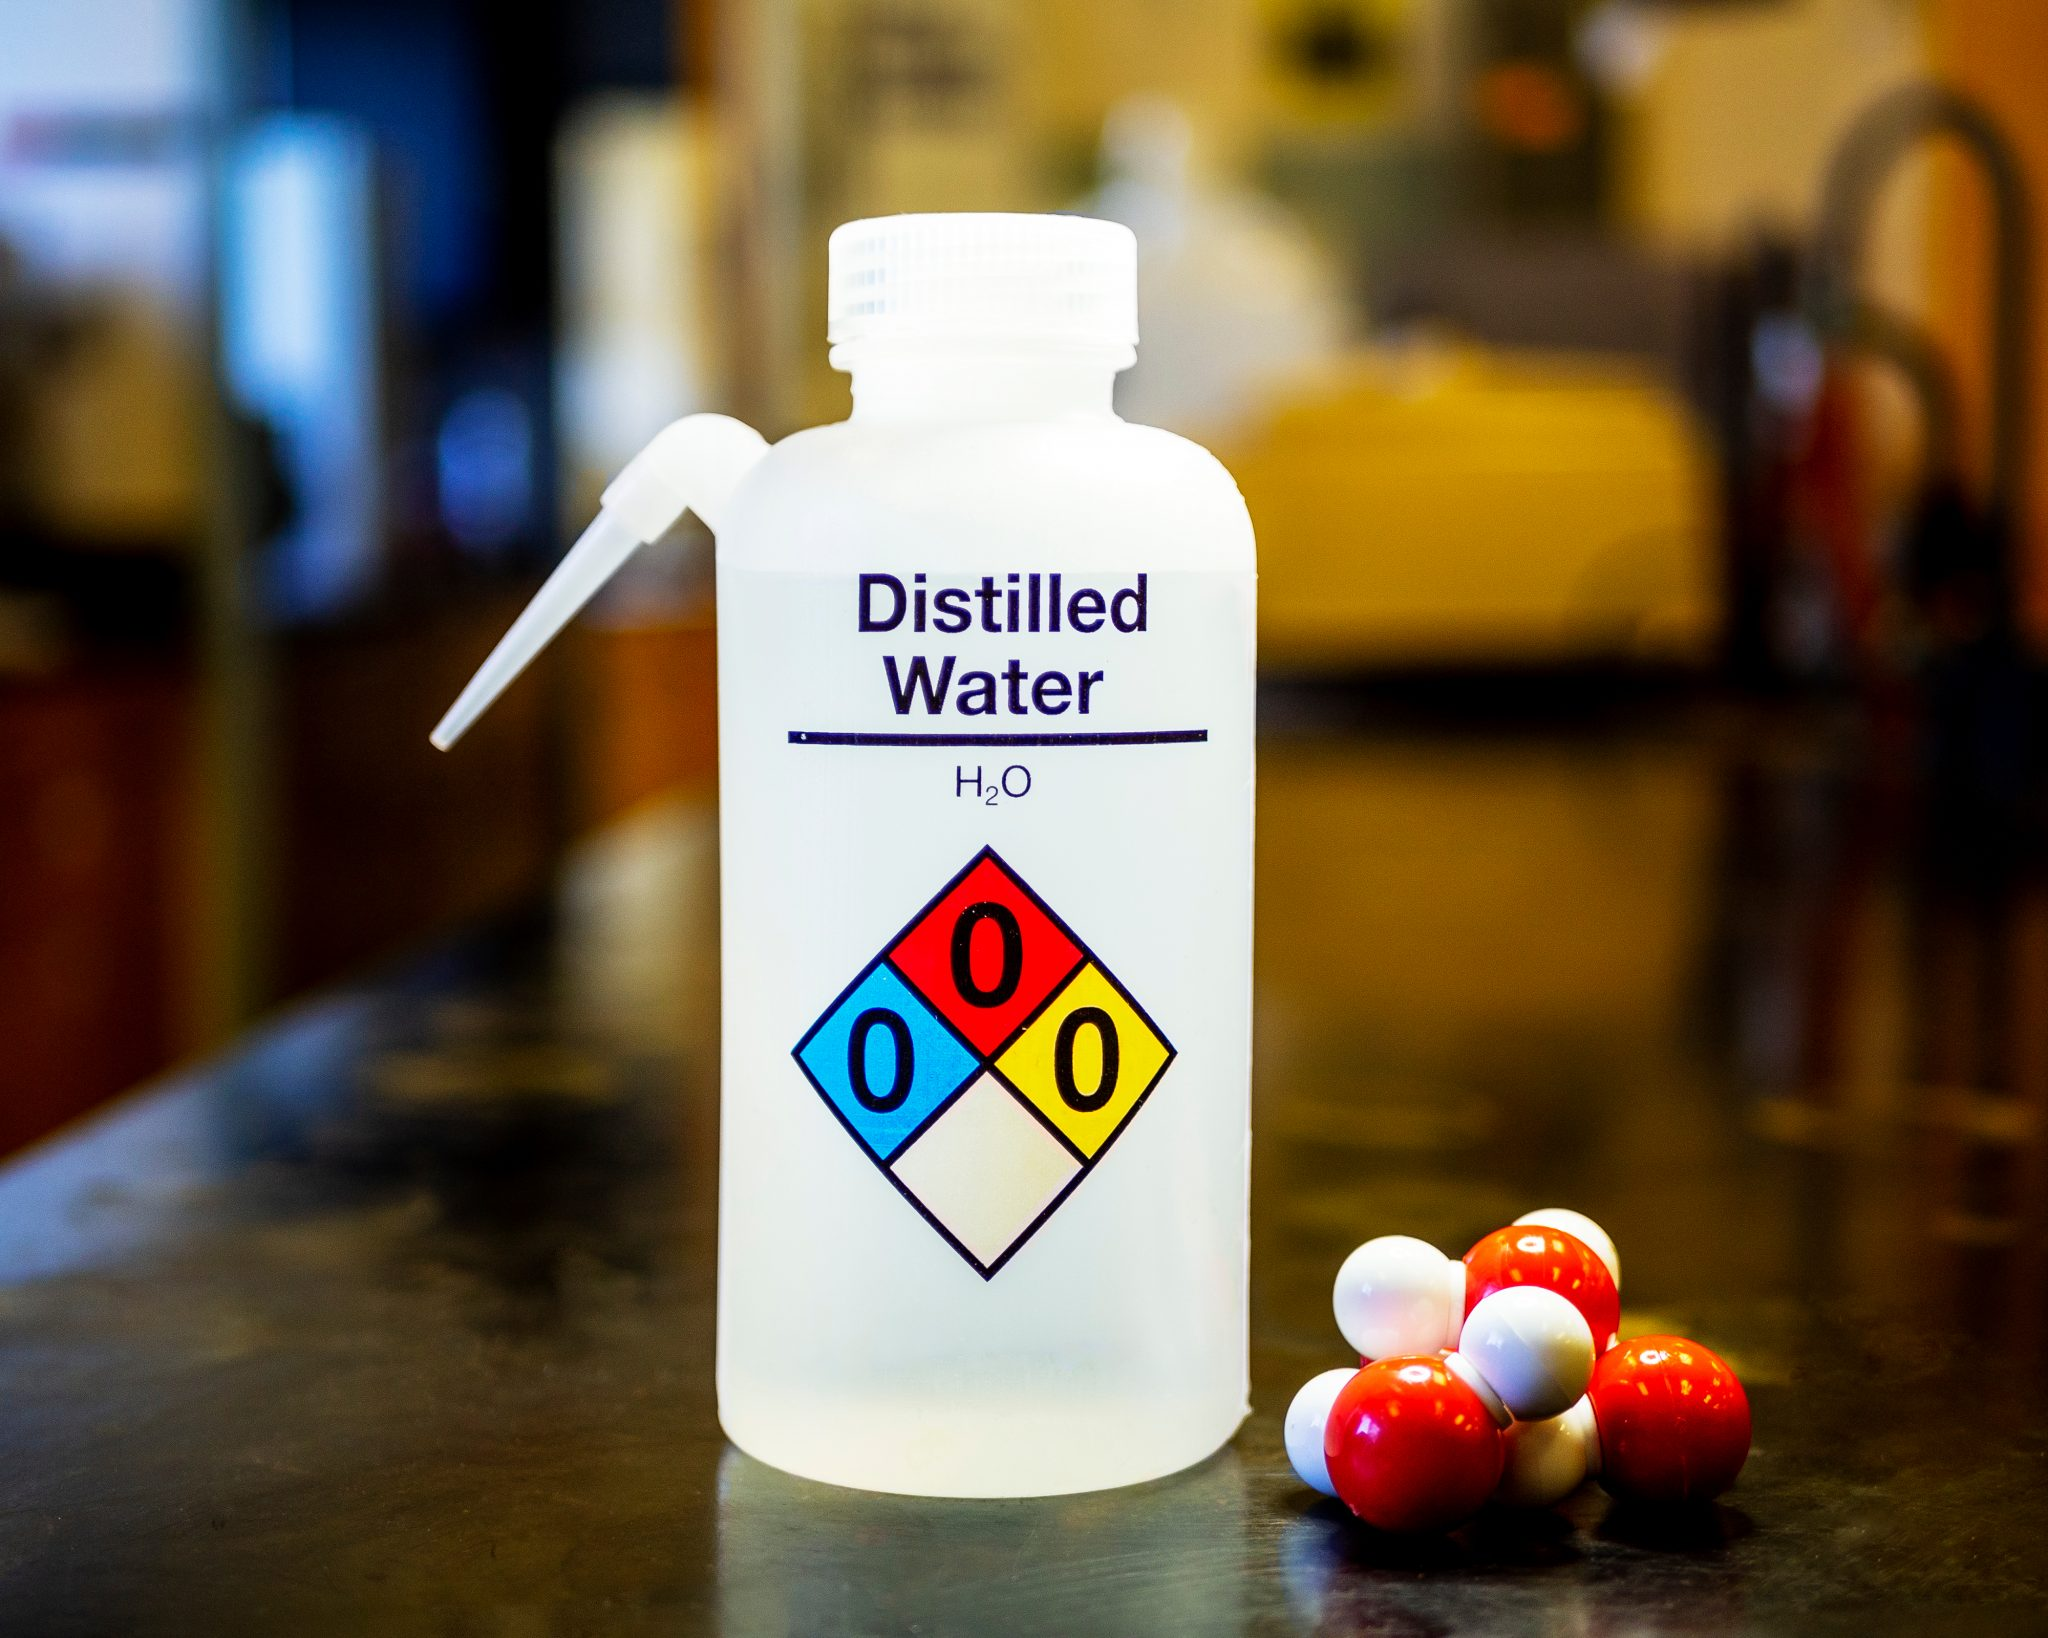 How long does distilled water last? Can it go bad?